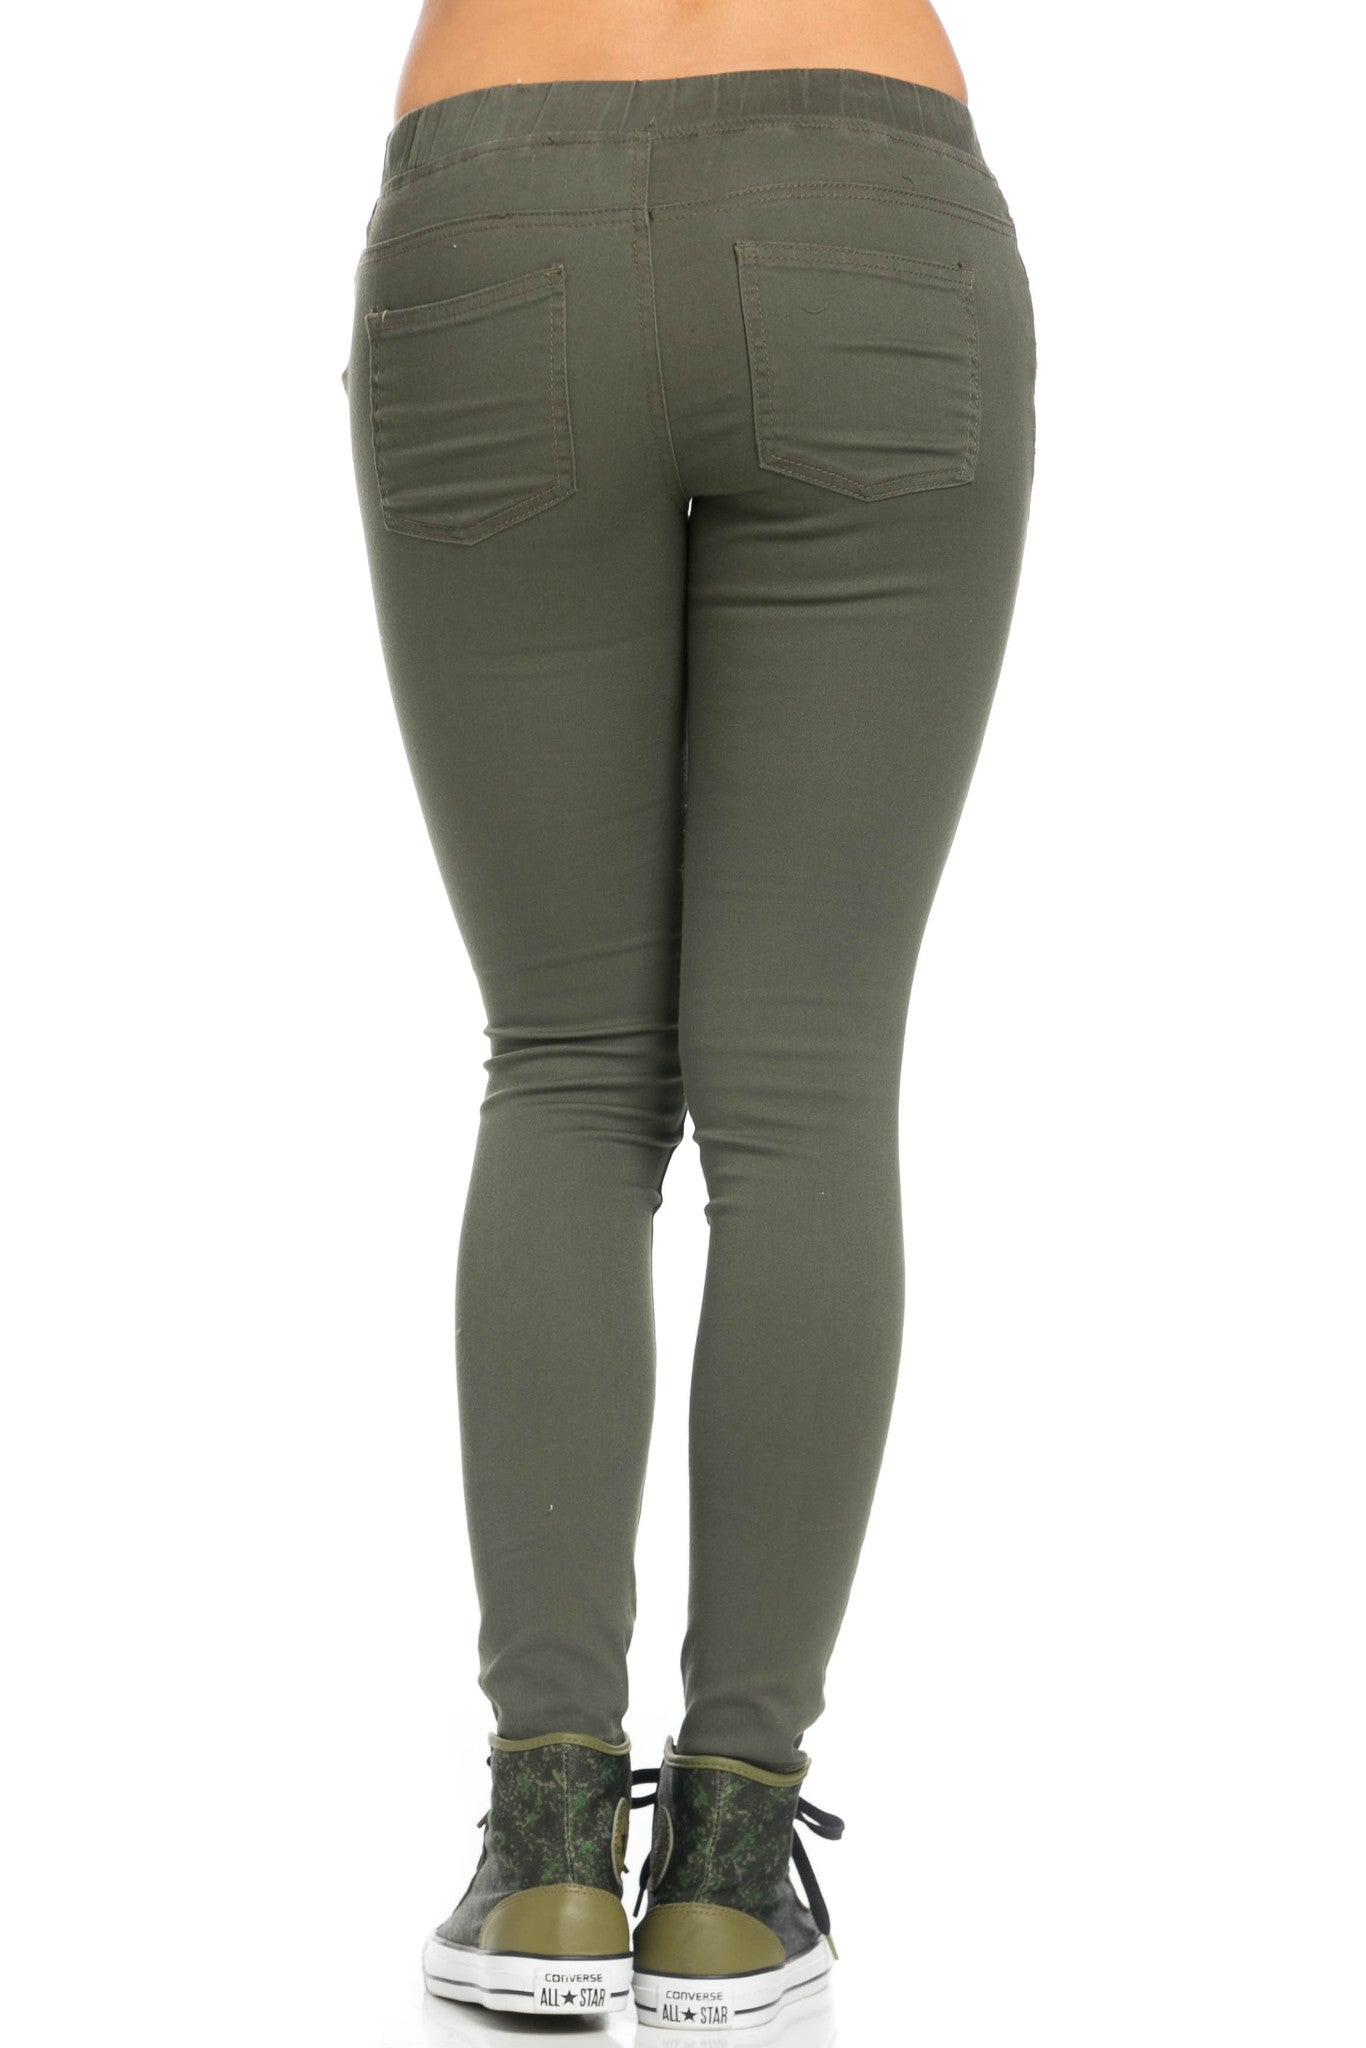 Destroyed Olive Skinny Jogger Jeans - Pants - My Yuccie - 4